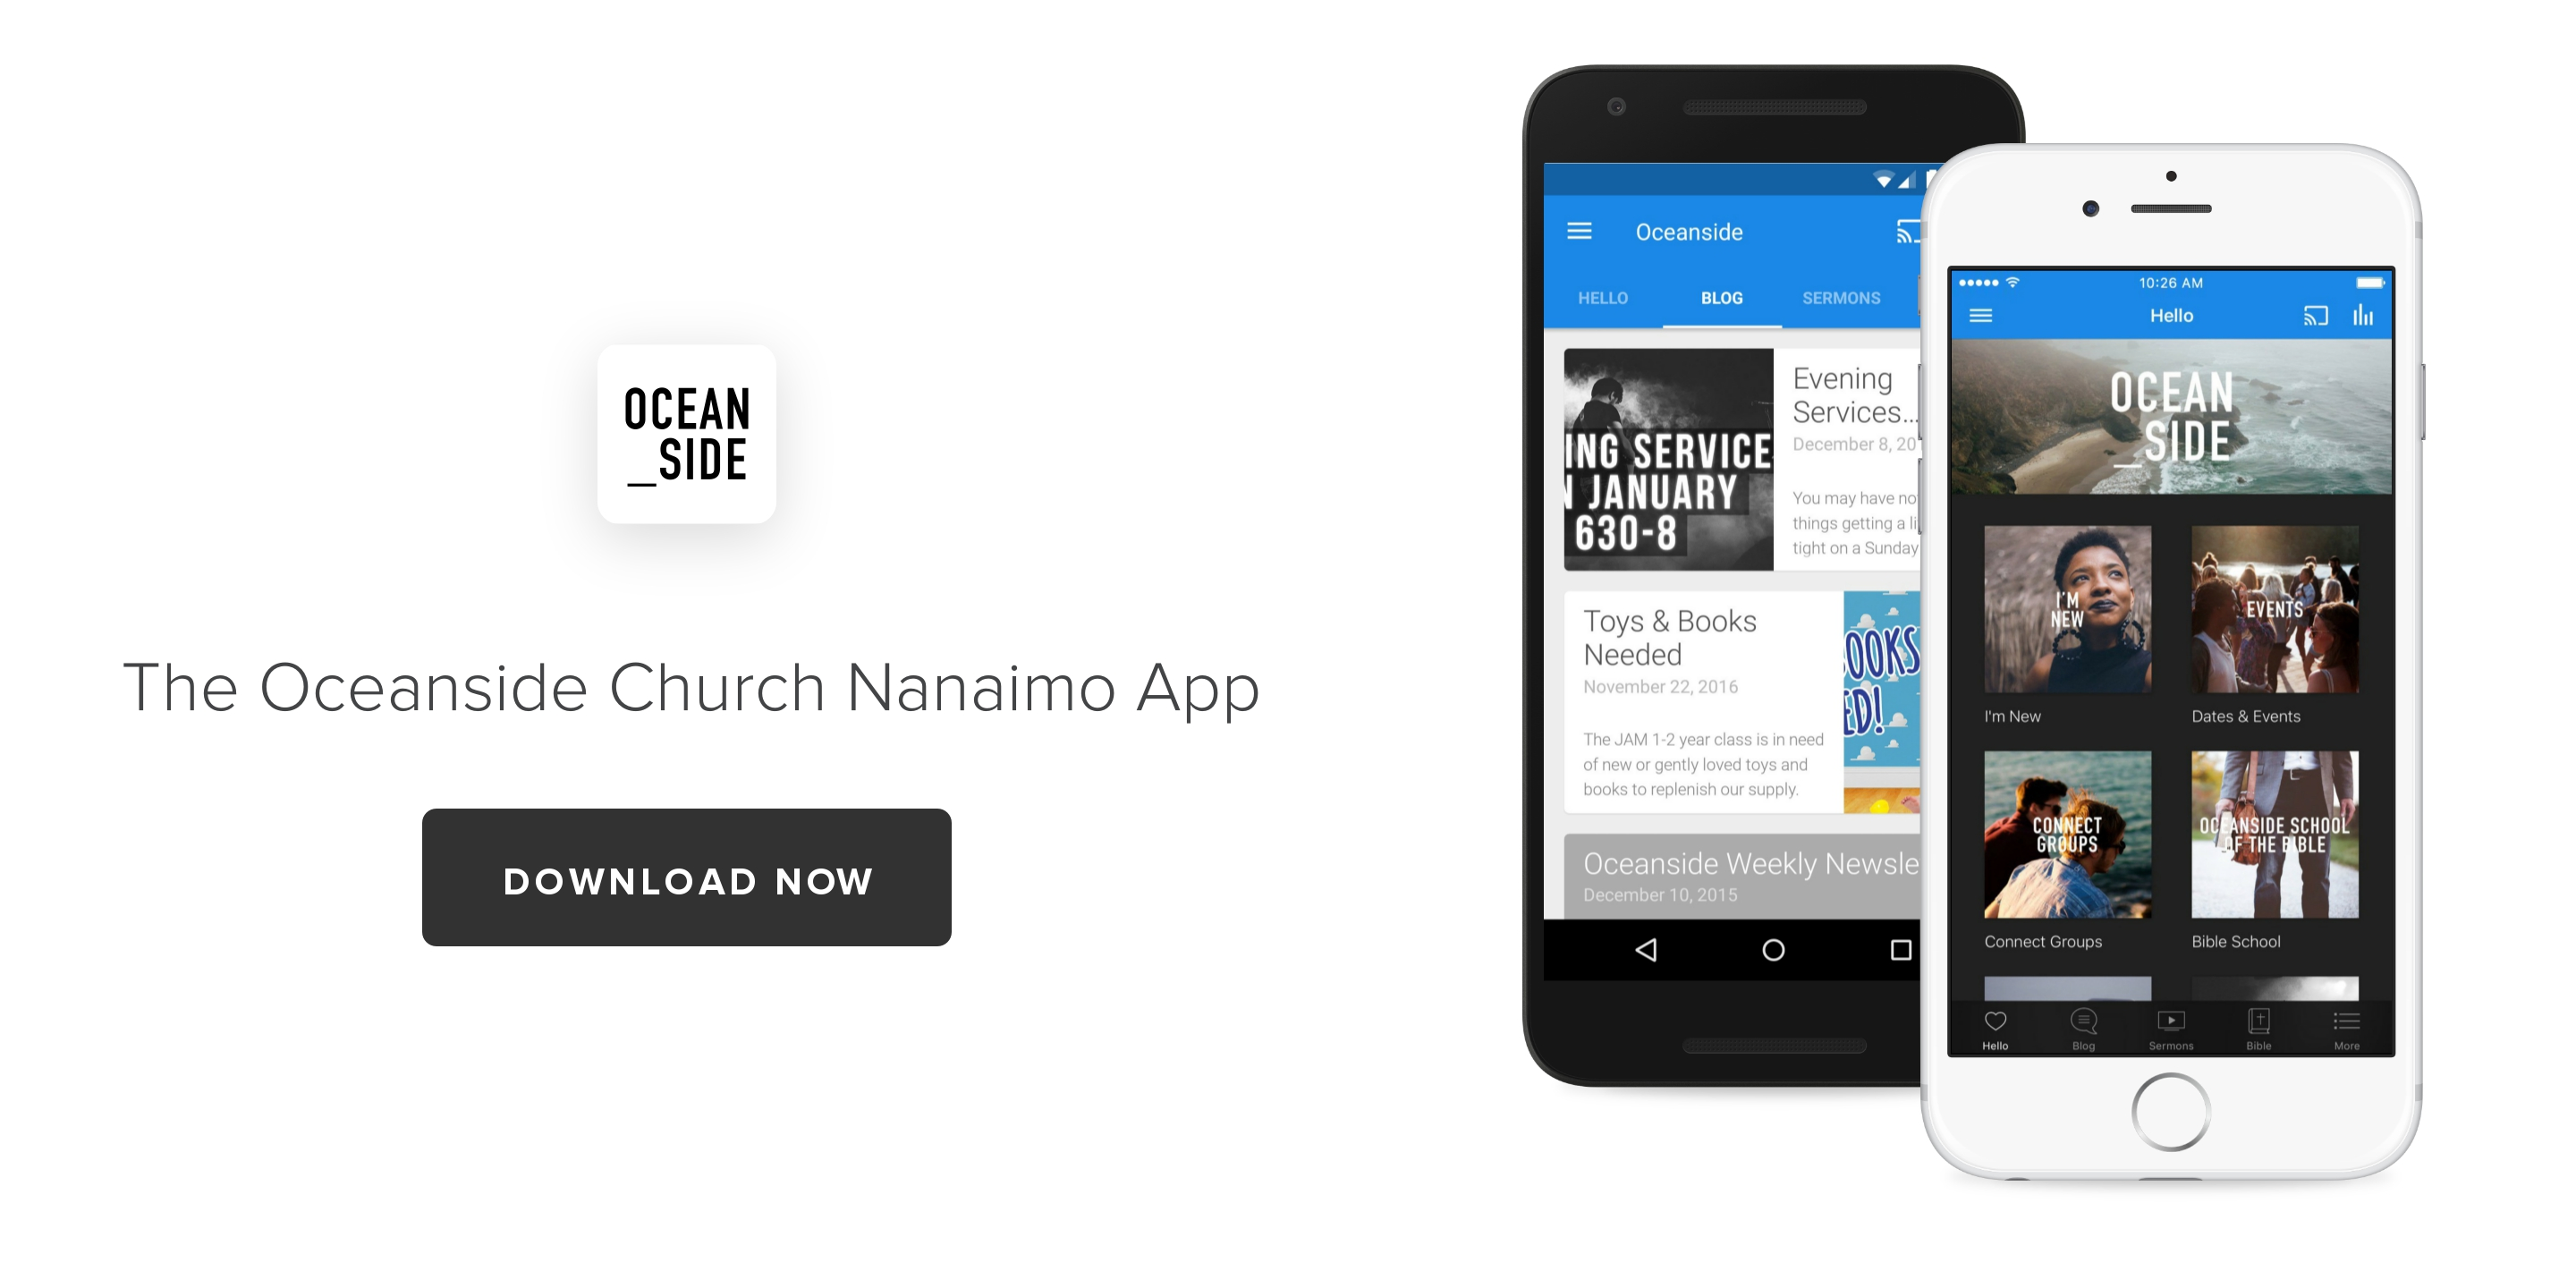 Download the new Oceanside Church App